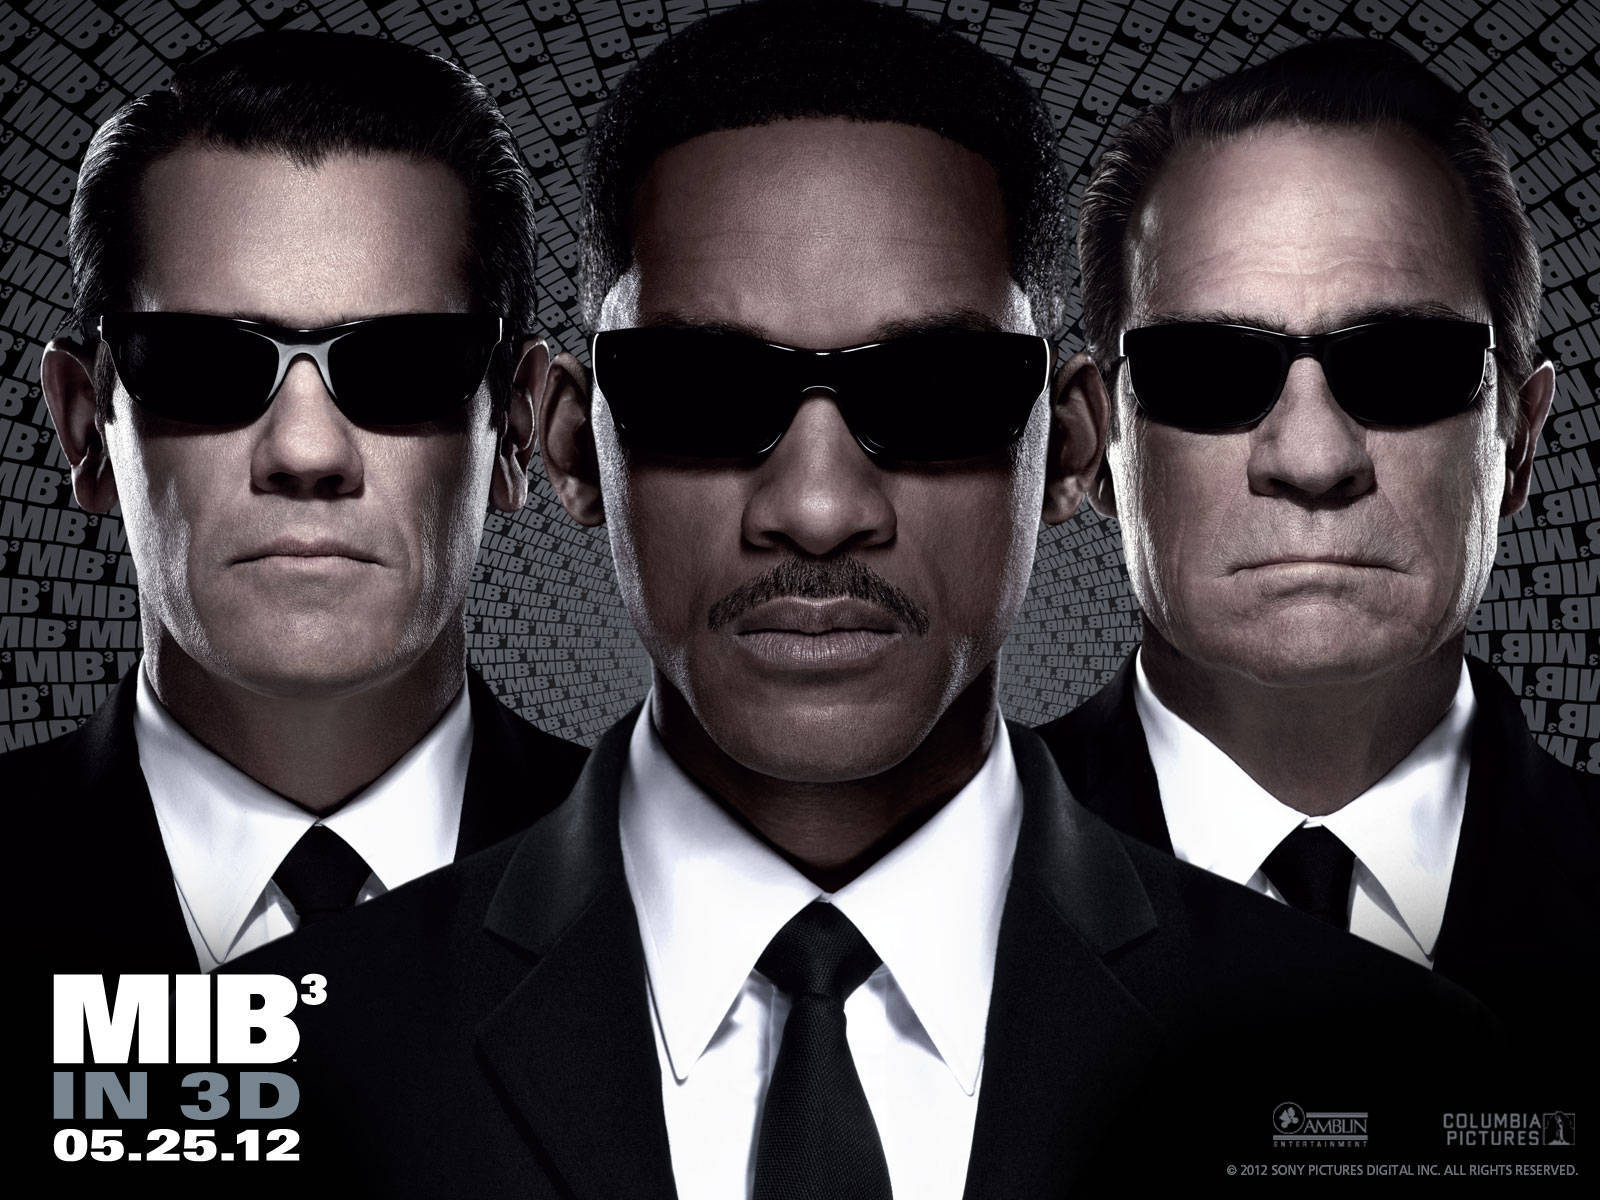 Men In Black 3 wallpaper 1